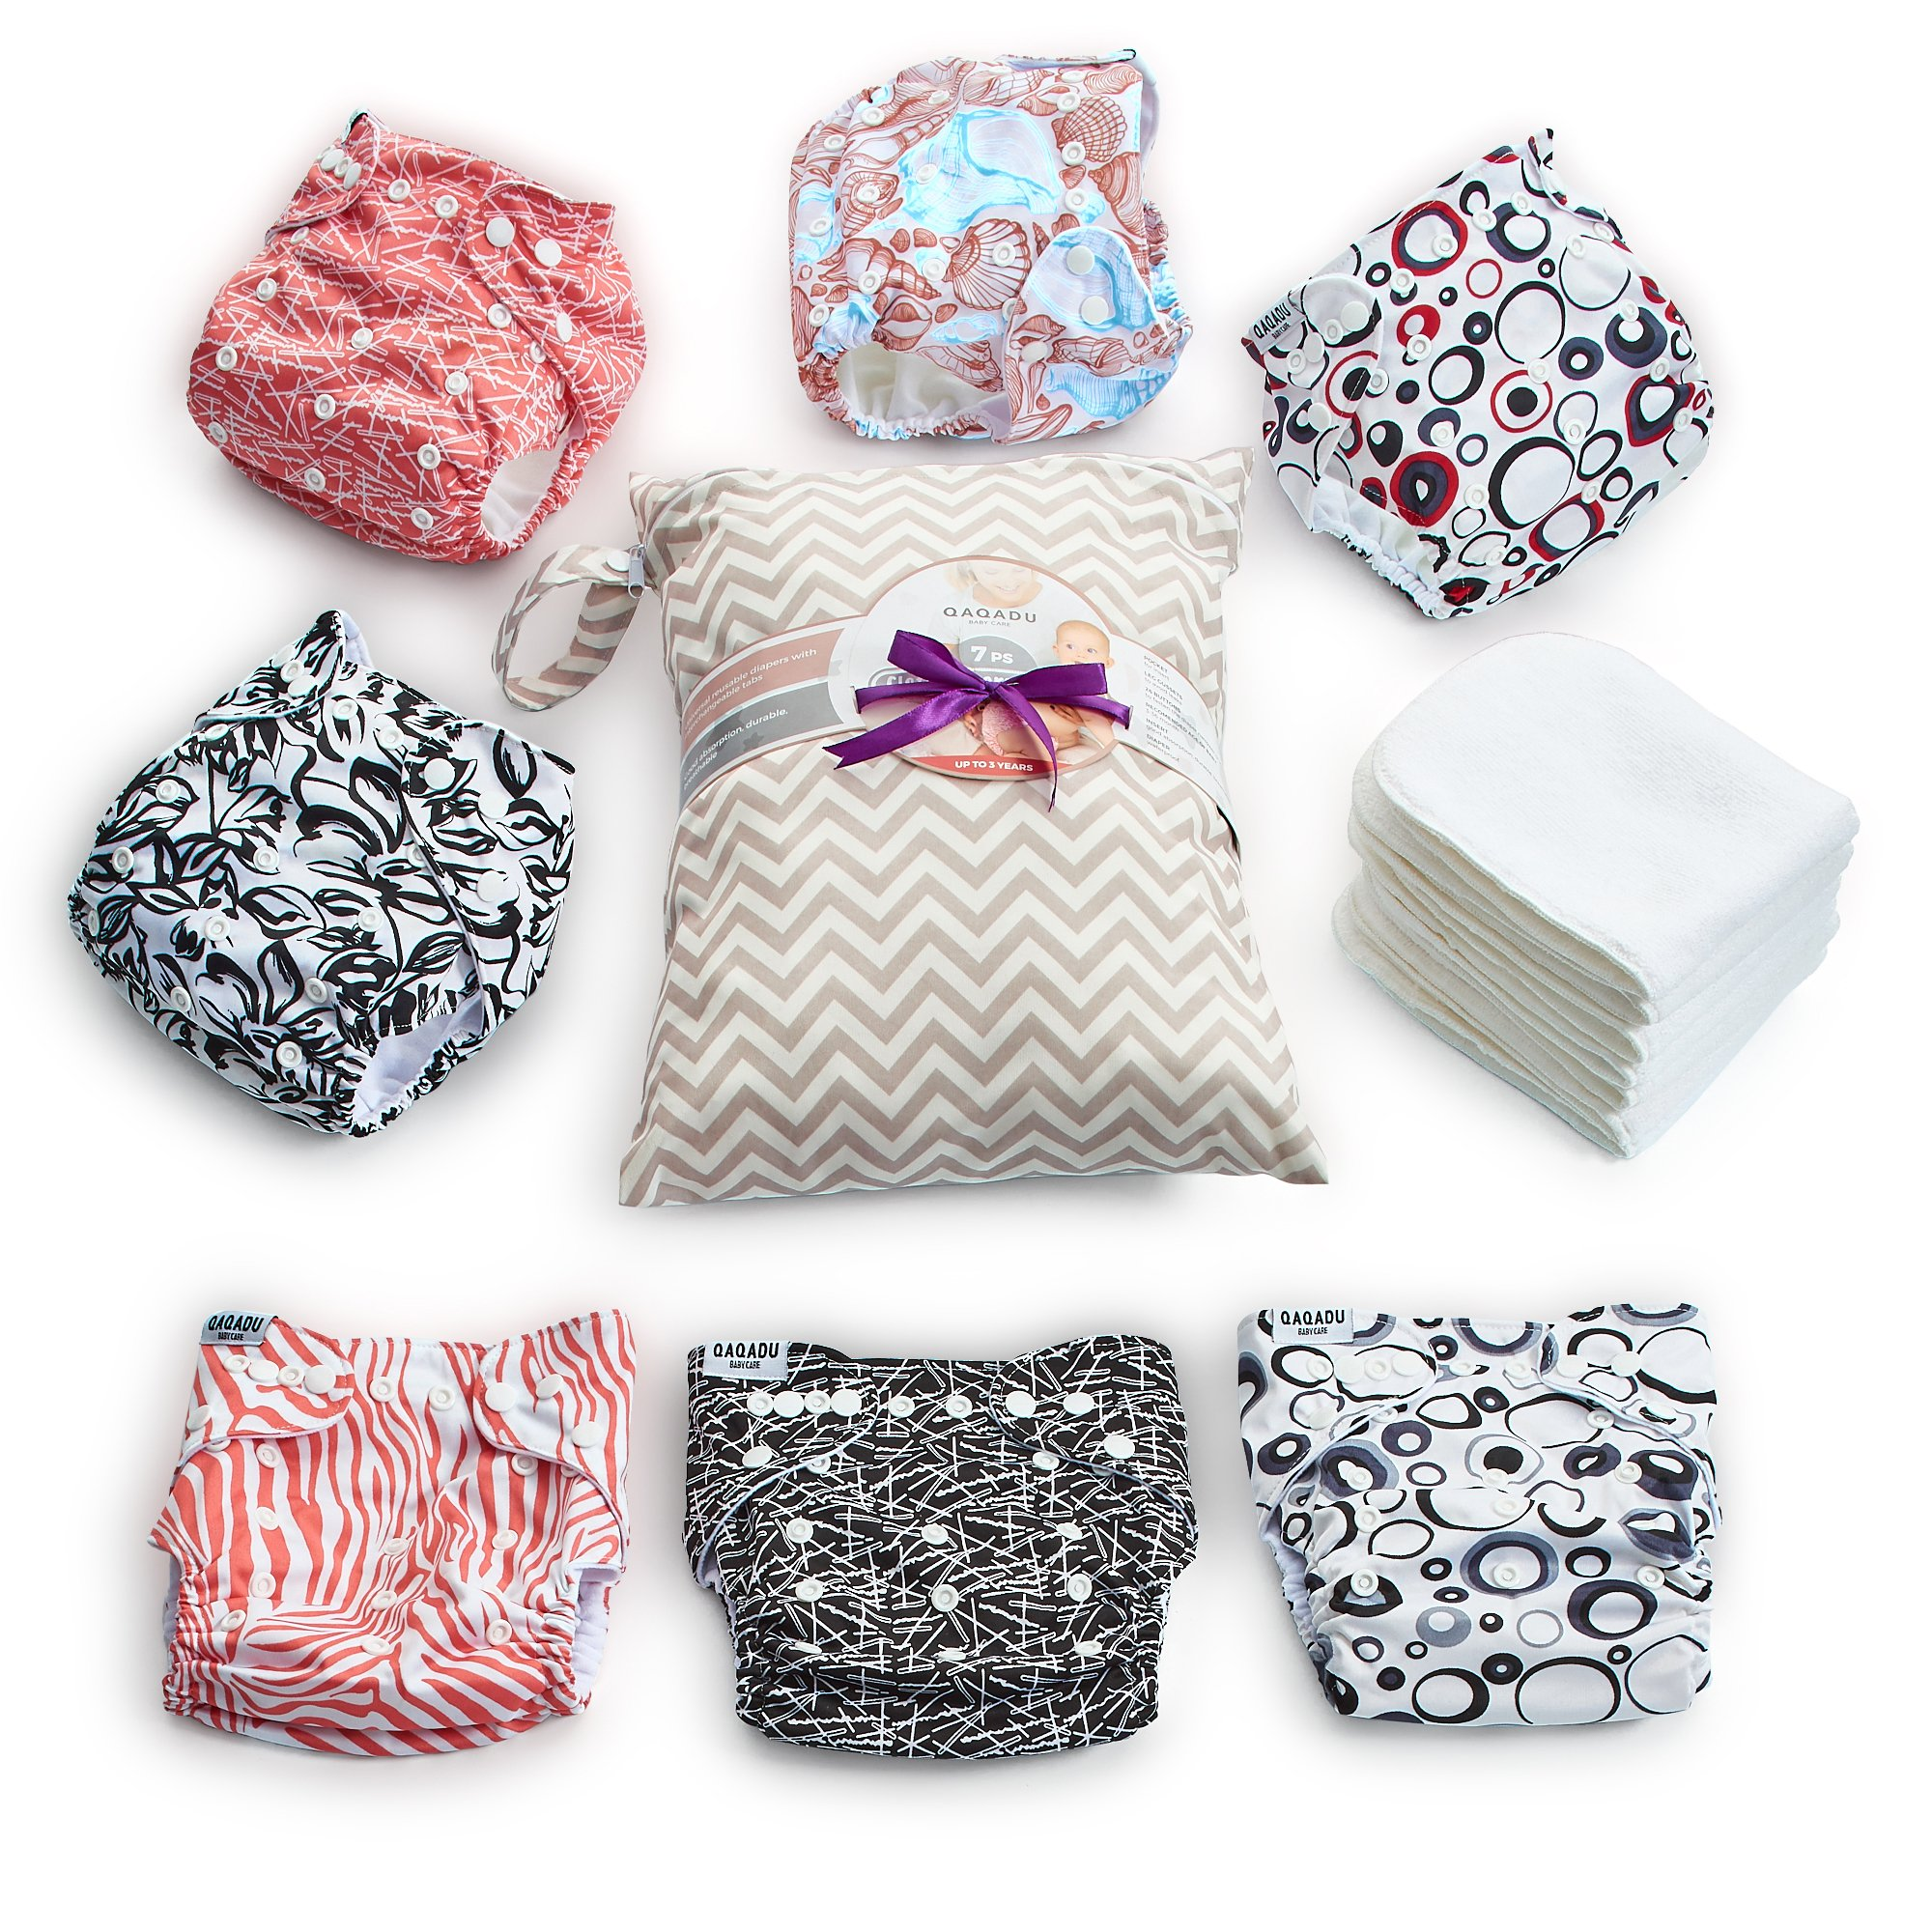 Cloth Diapers - 15 pcs Set of 7 Baby Cloth Diaper Covers, 7 Reusable Diaper Inserts Liners, 1 Waterproof Carry Bag - All in One Pack - Unisex Pocket Design for Boys & Girls - Great for Baby Shower